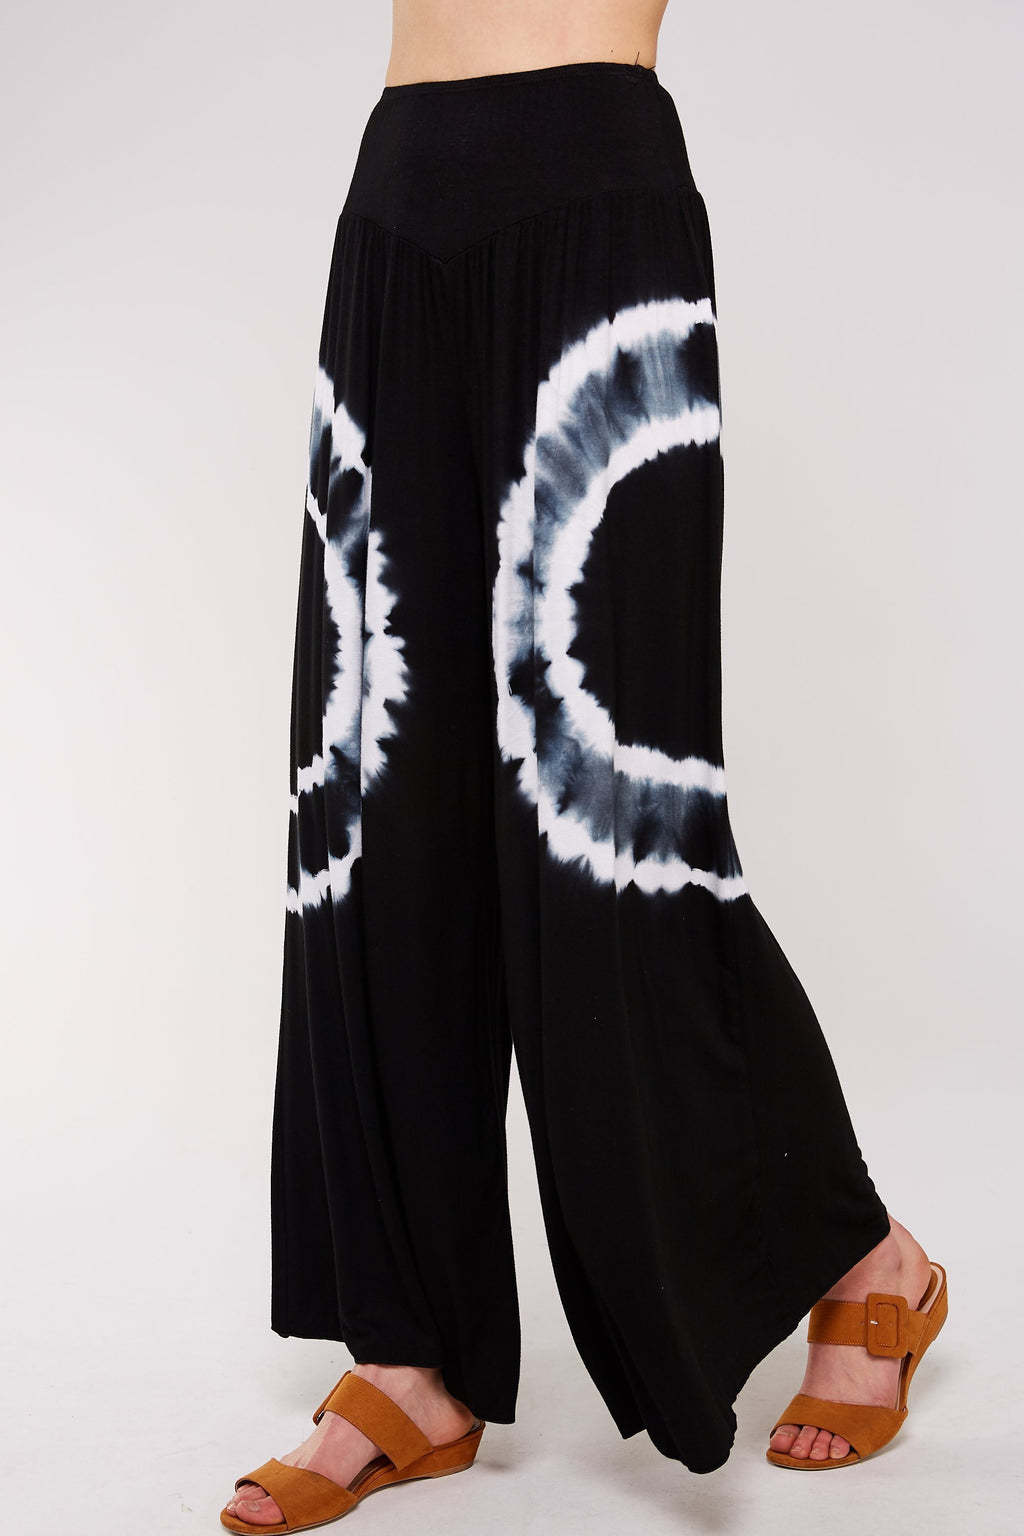 Wholesale Clothing, Online Wholesale Clothing, Women Clothing, Bohemian, Free People, tiedye, specialty wash, wholesale seller, wholesale women clothing shop, gypsy look, USA made, URBAN X APPAREL-PANTS-UPR3103BS, fashiontrend2019